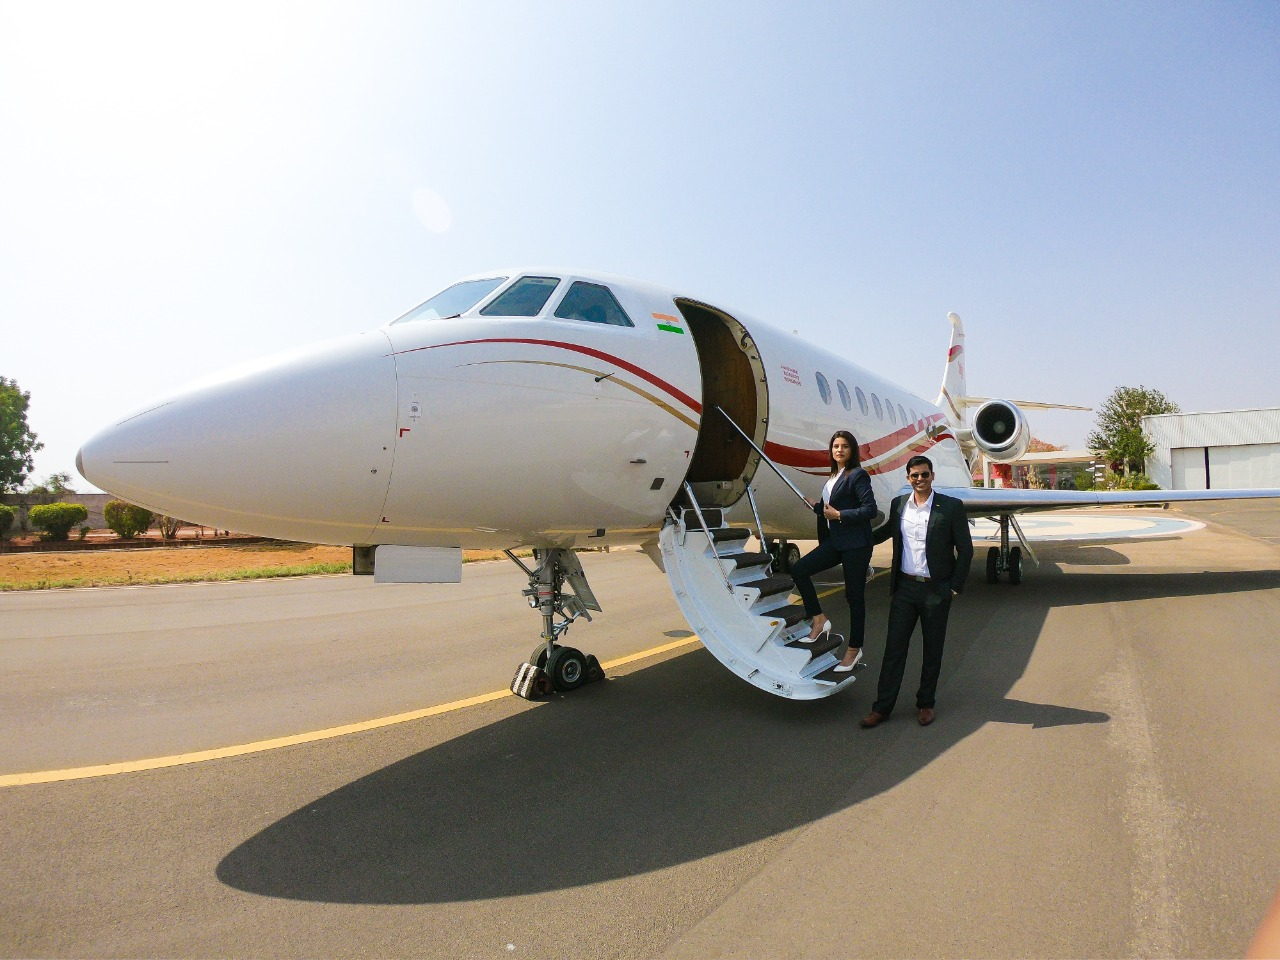 what to carry during flying in private jet?